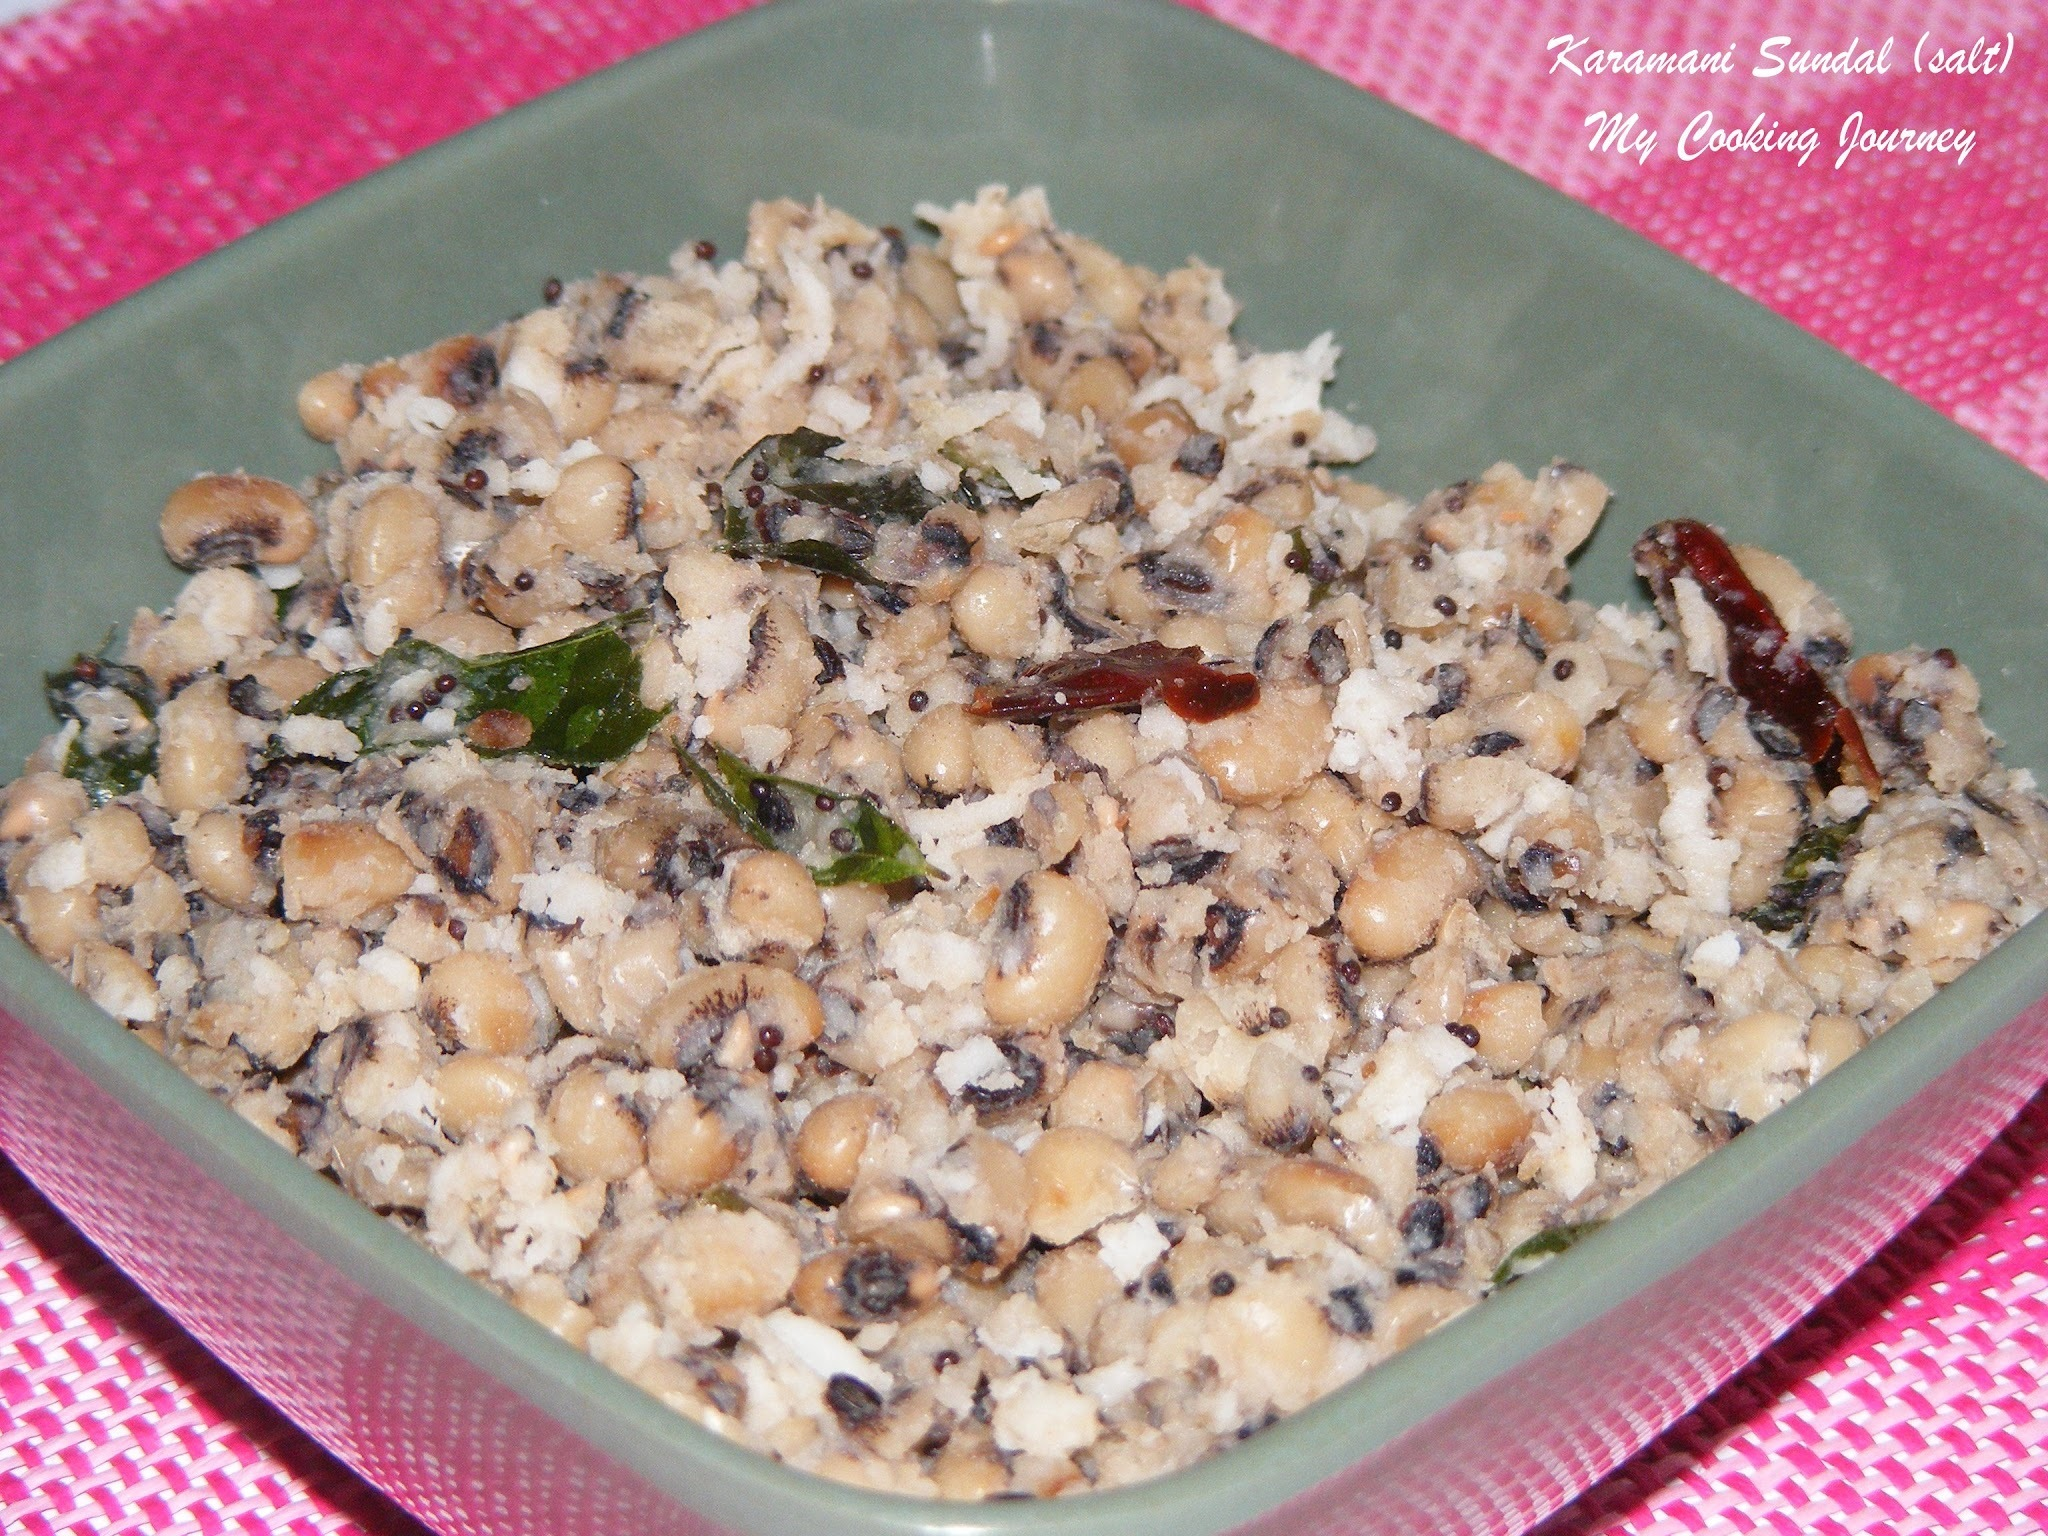 Karamani Sundal (salt version) /Black eye beans/Cowpeas cooked with Coconut